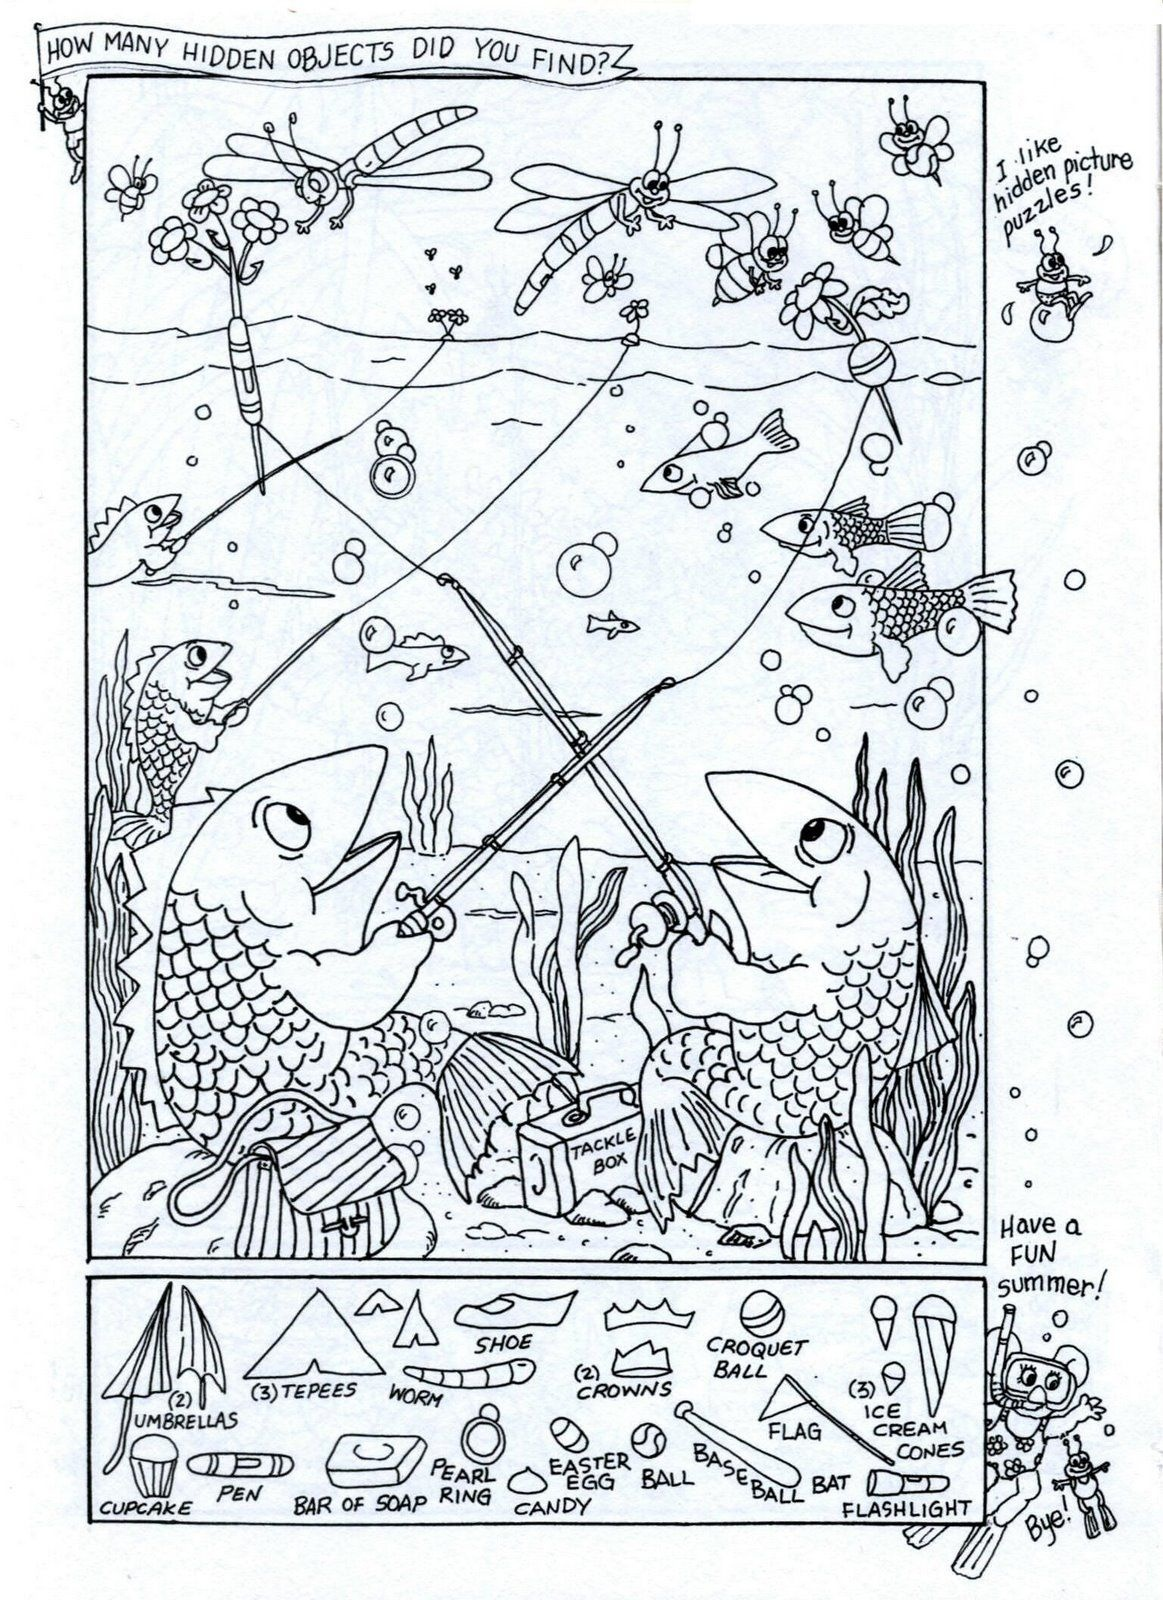 Summer Fun - Hidden Picture Puzzle/coloring Page | Puzzles-Logic - Free Printable Summer Puzzles